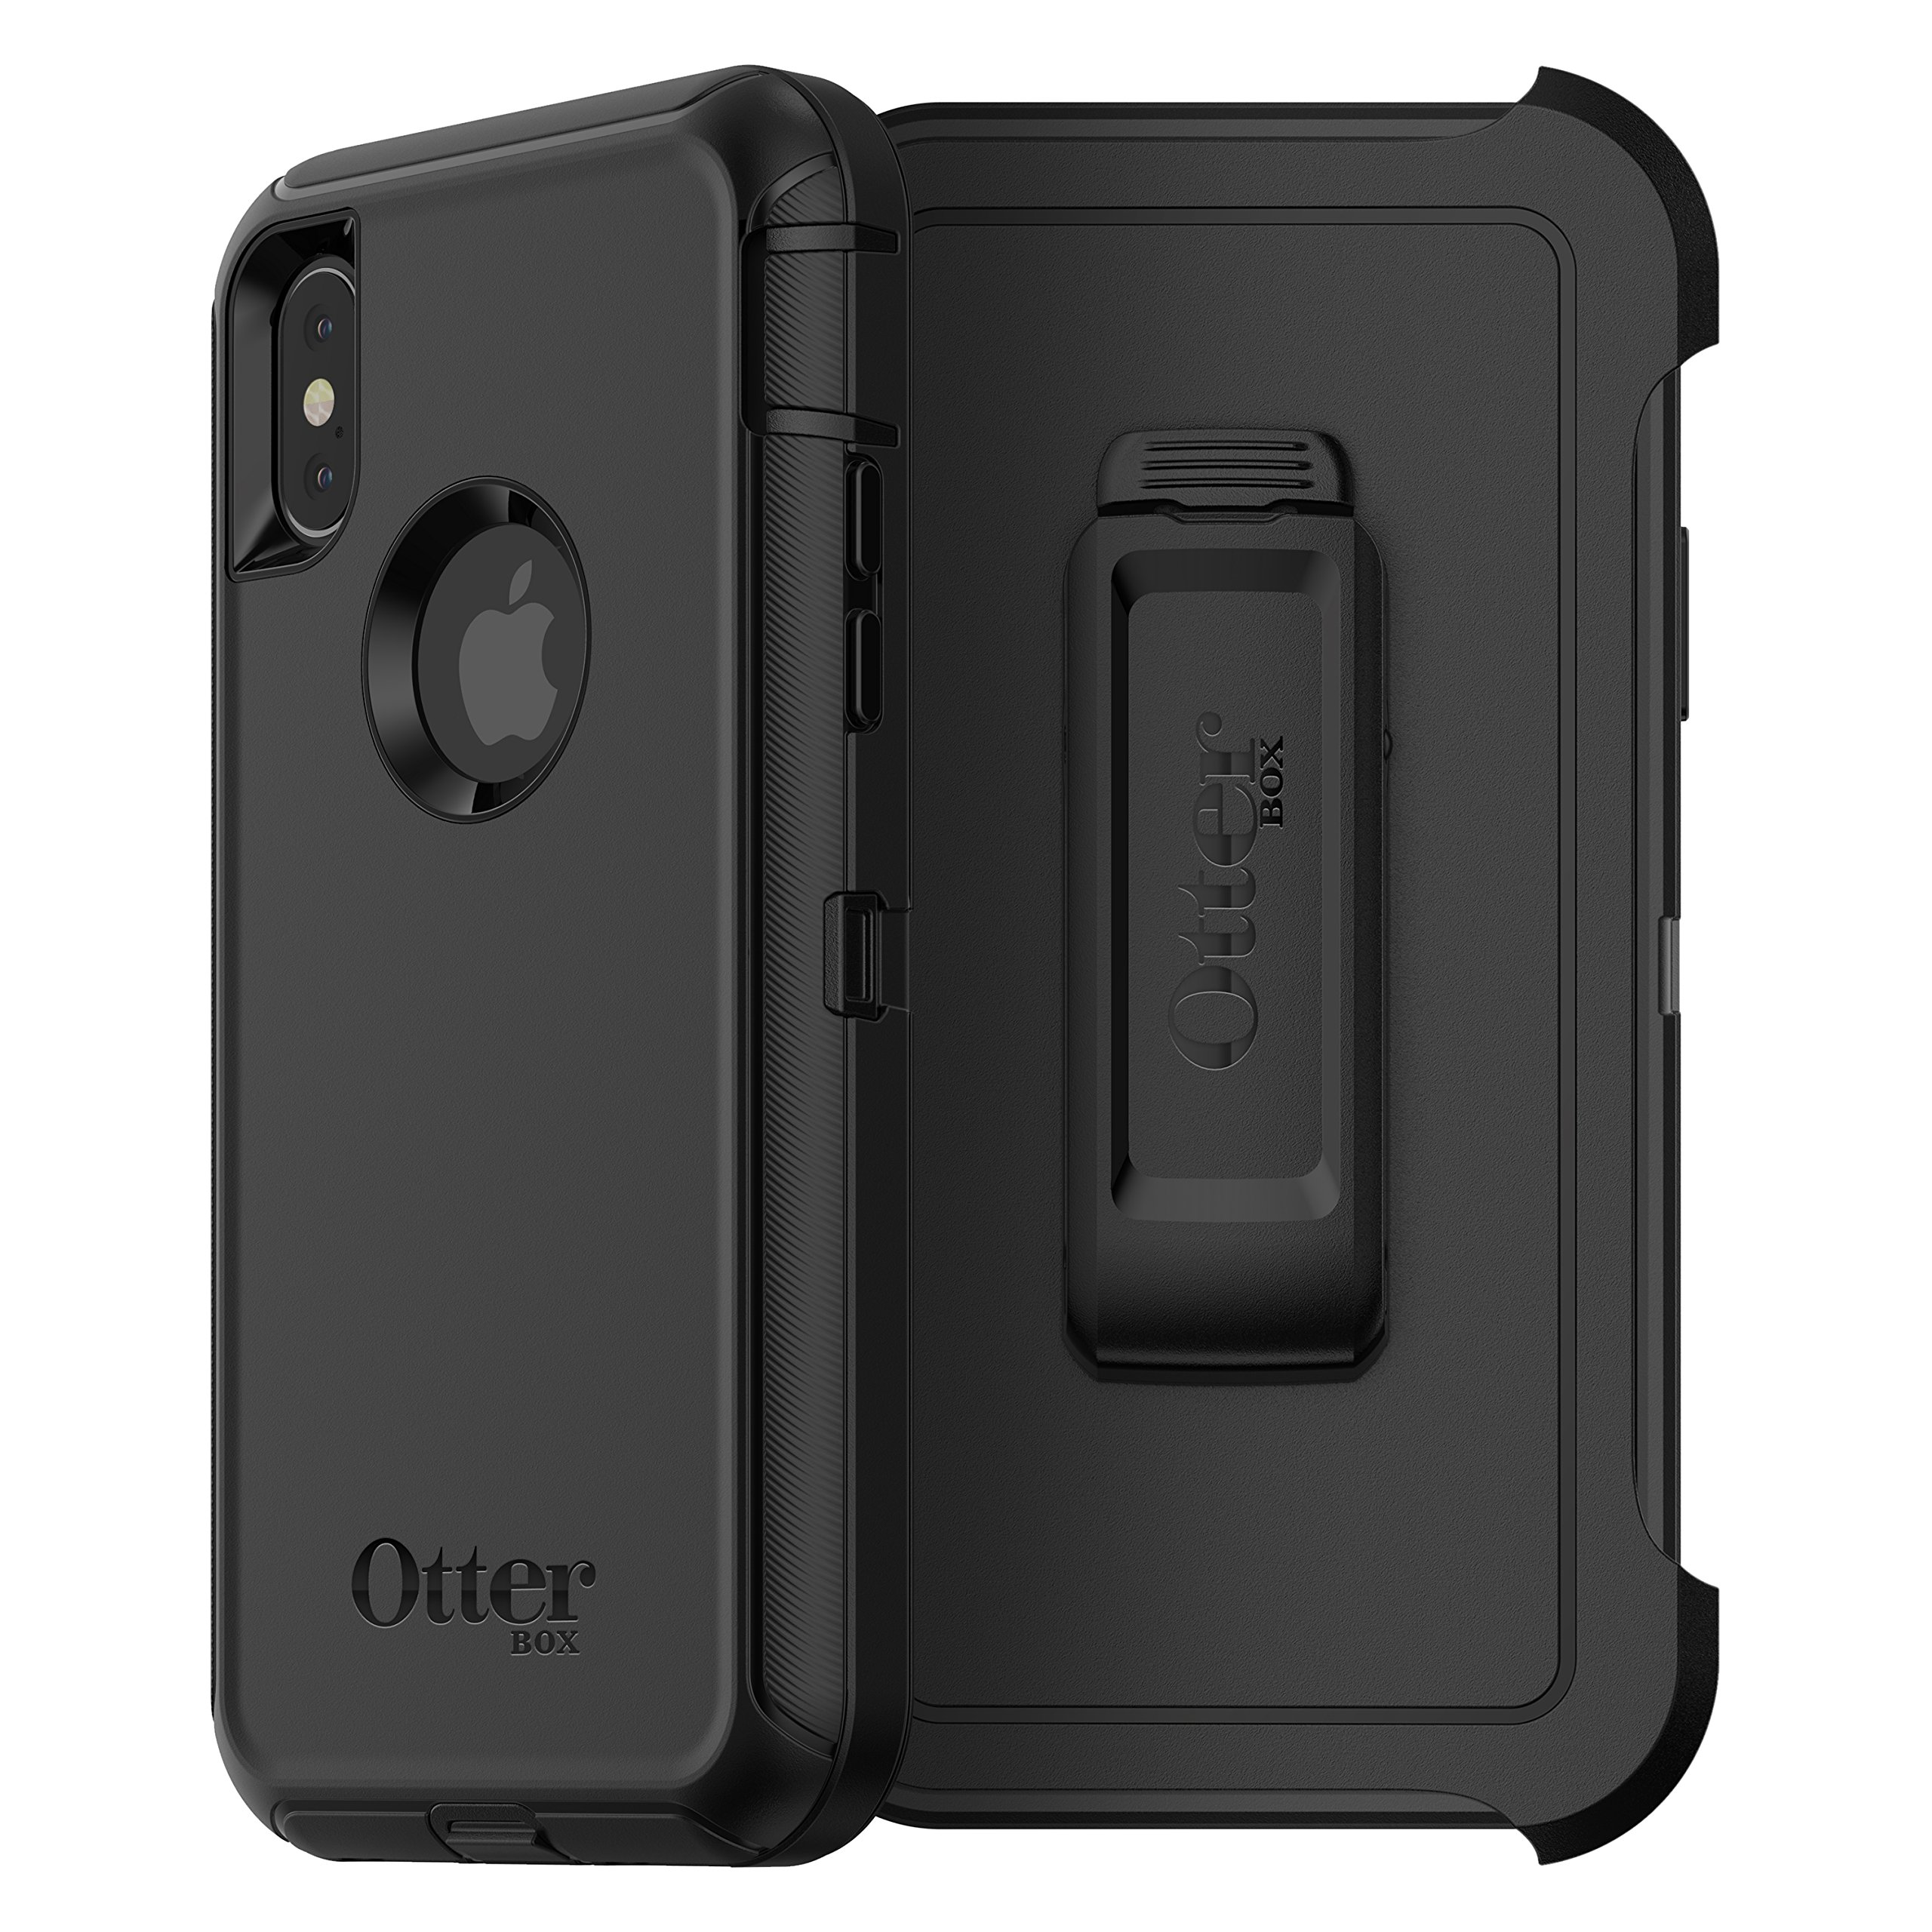 OtterBox DEFENDER SERIES Case for iPhone X (ONLY) - BLACK